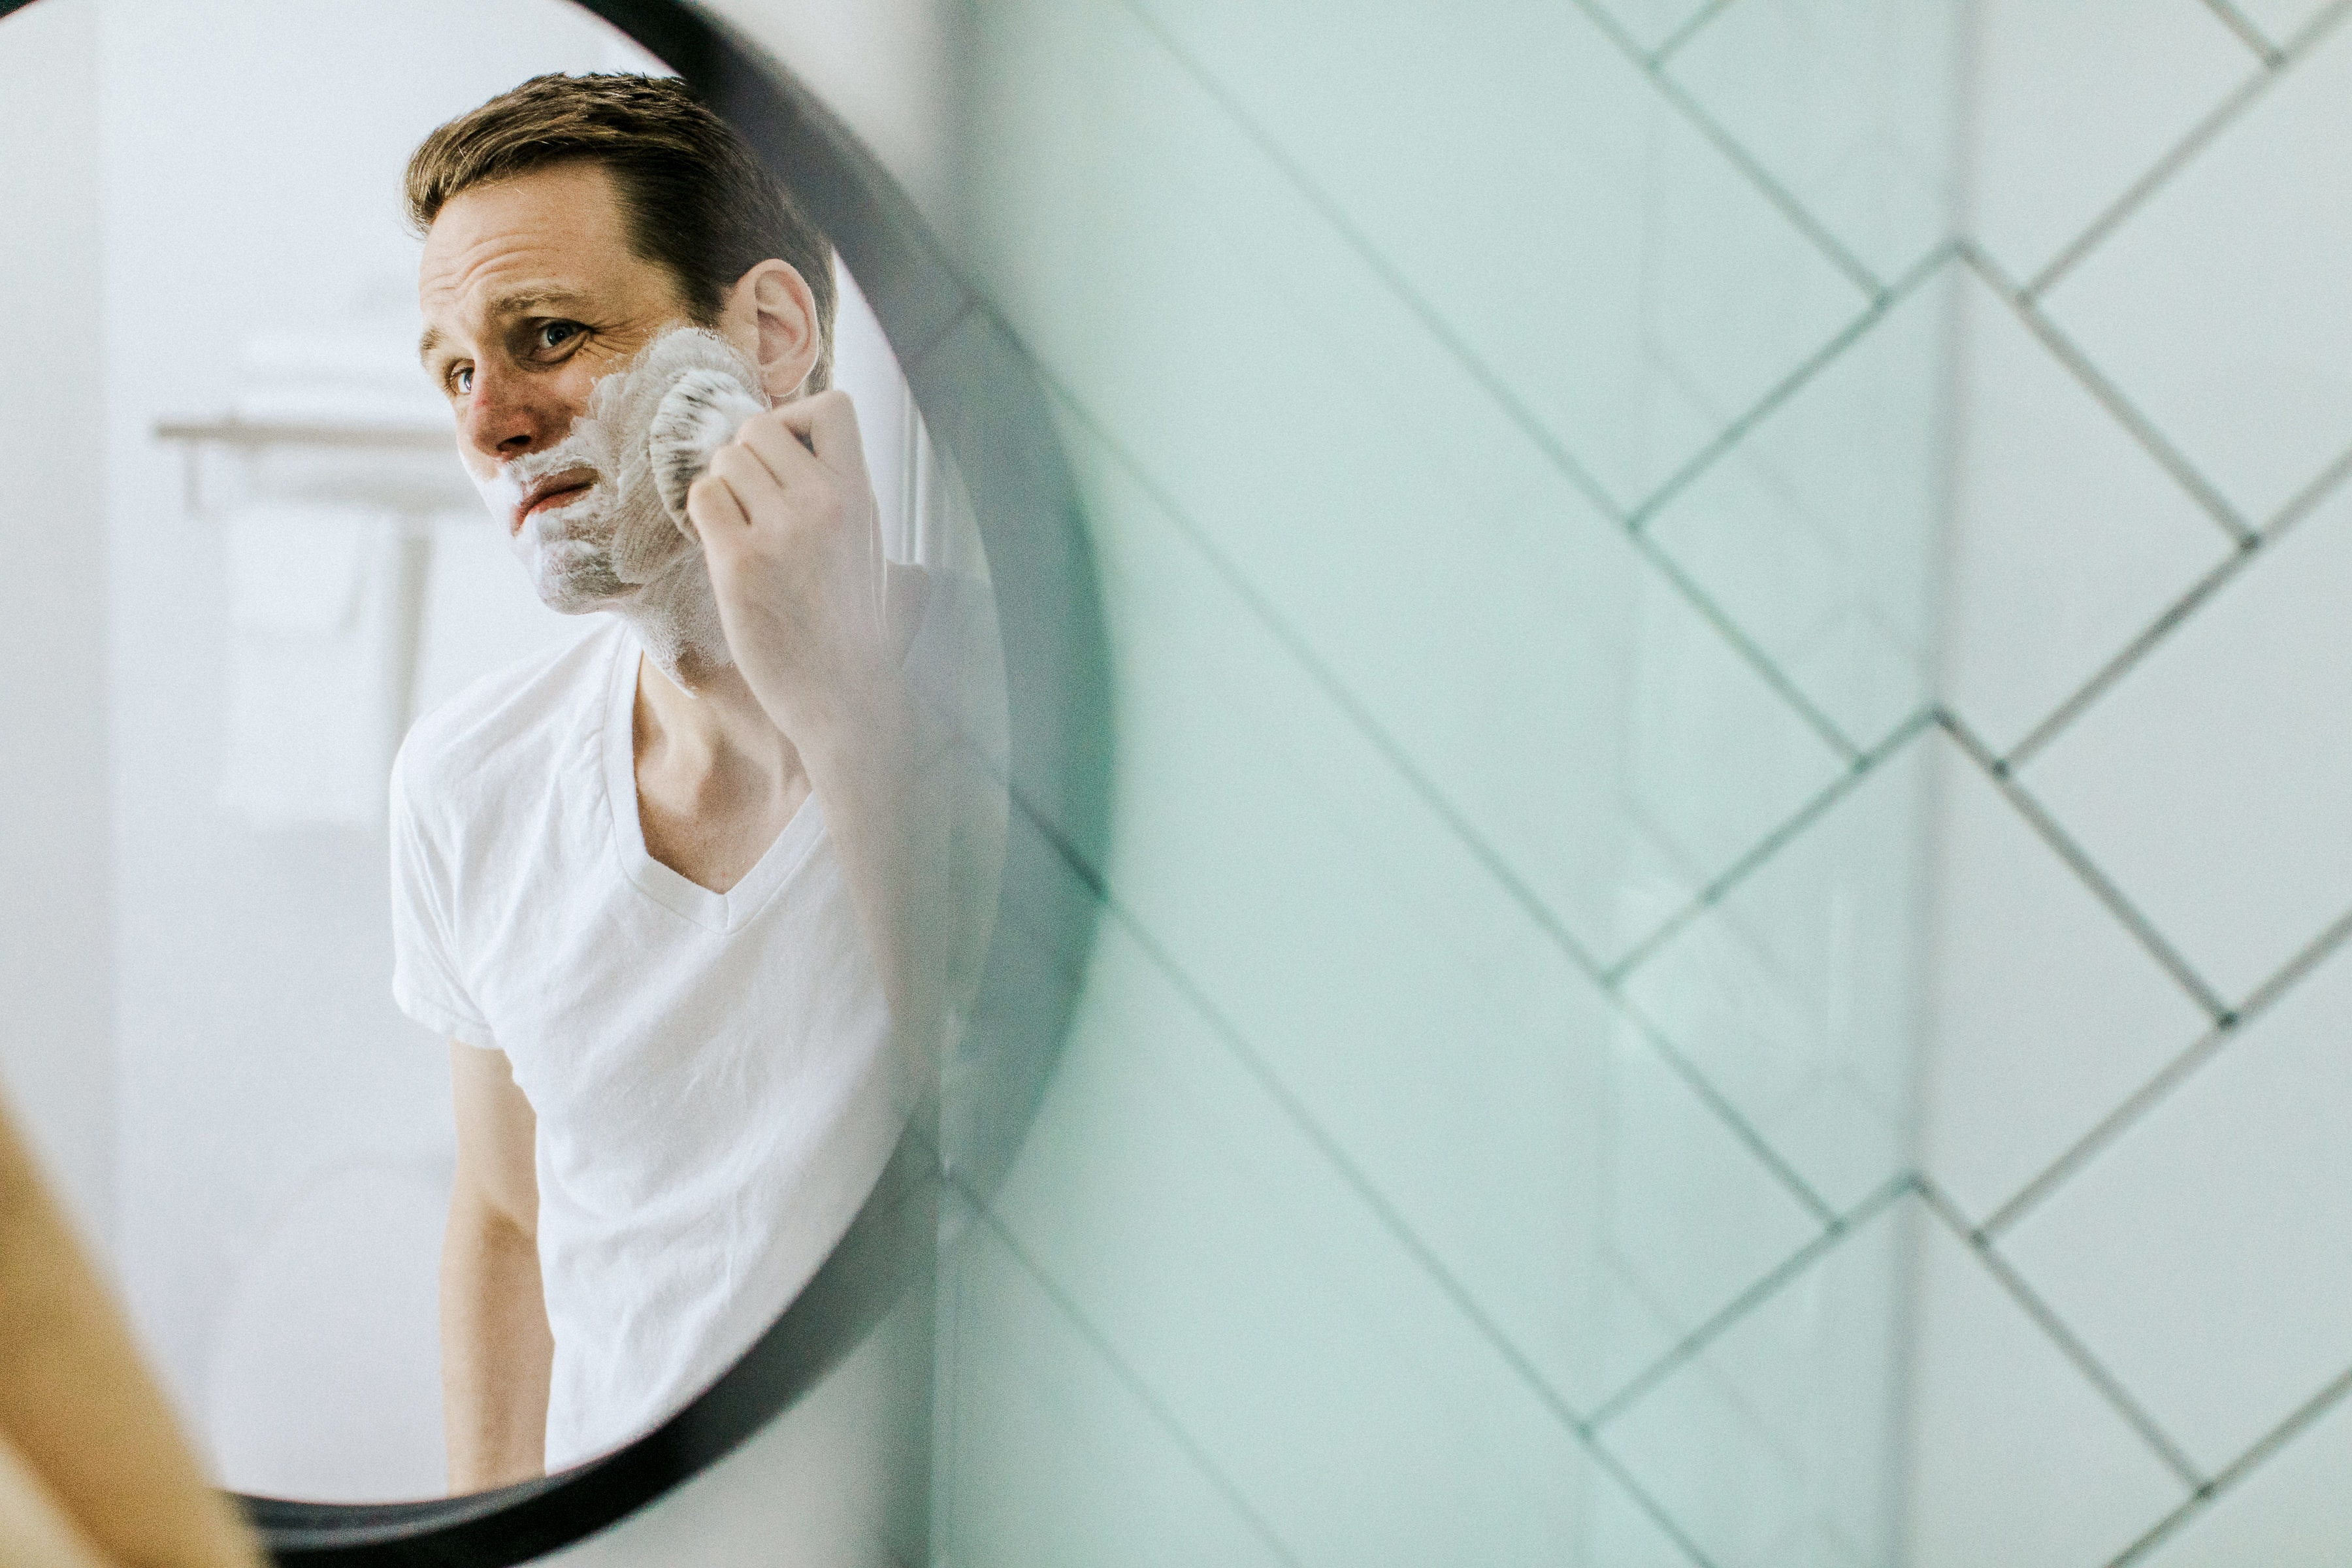 A person washes his face with a face brush.